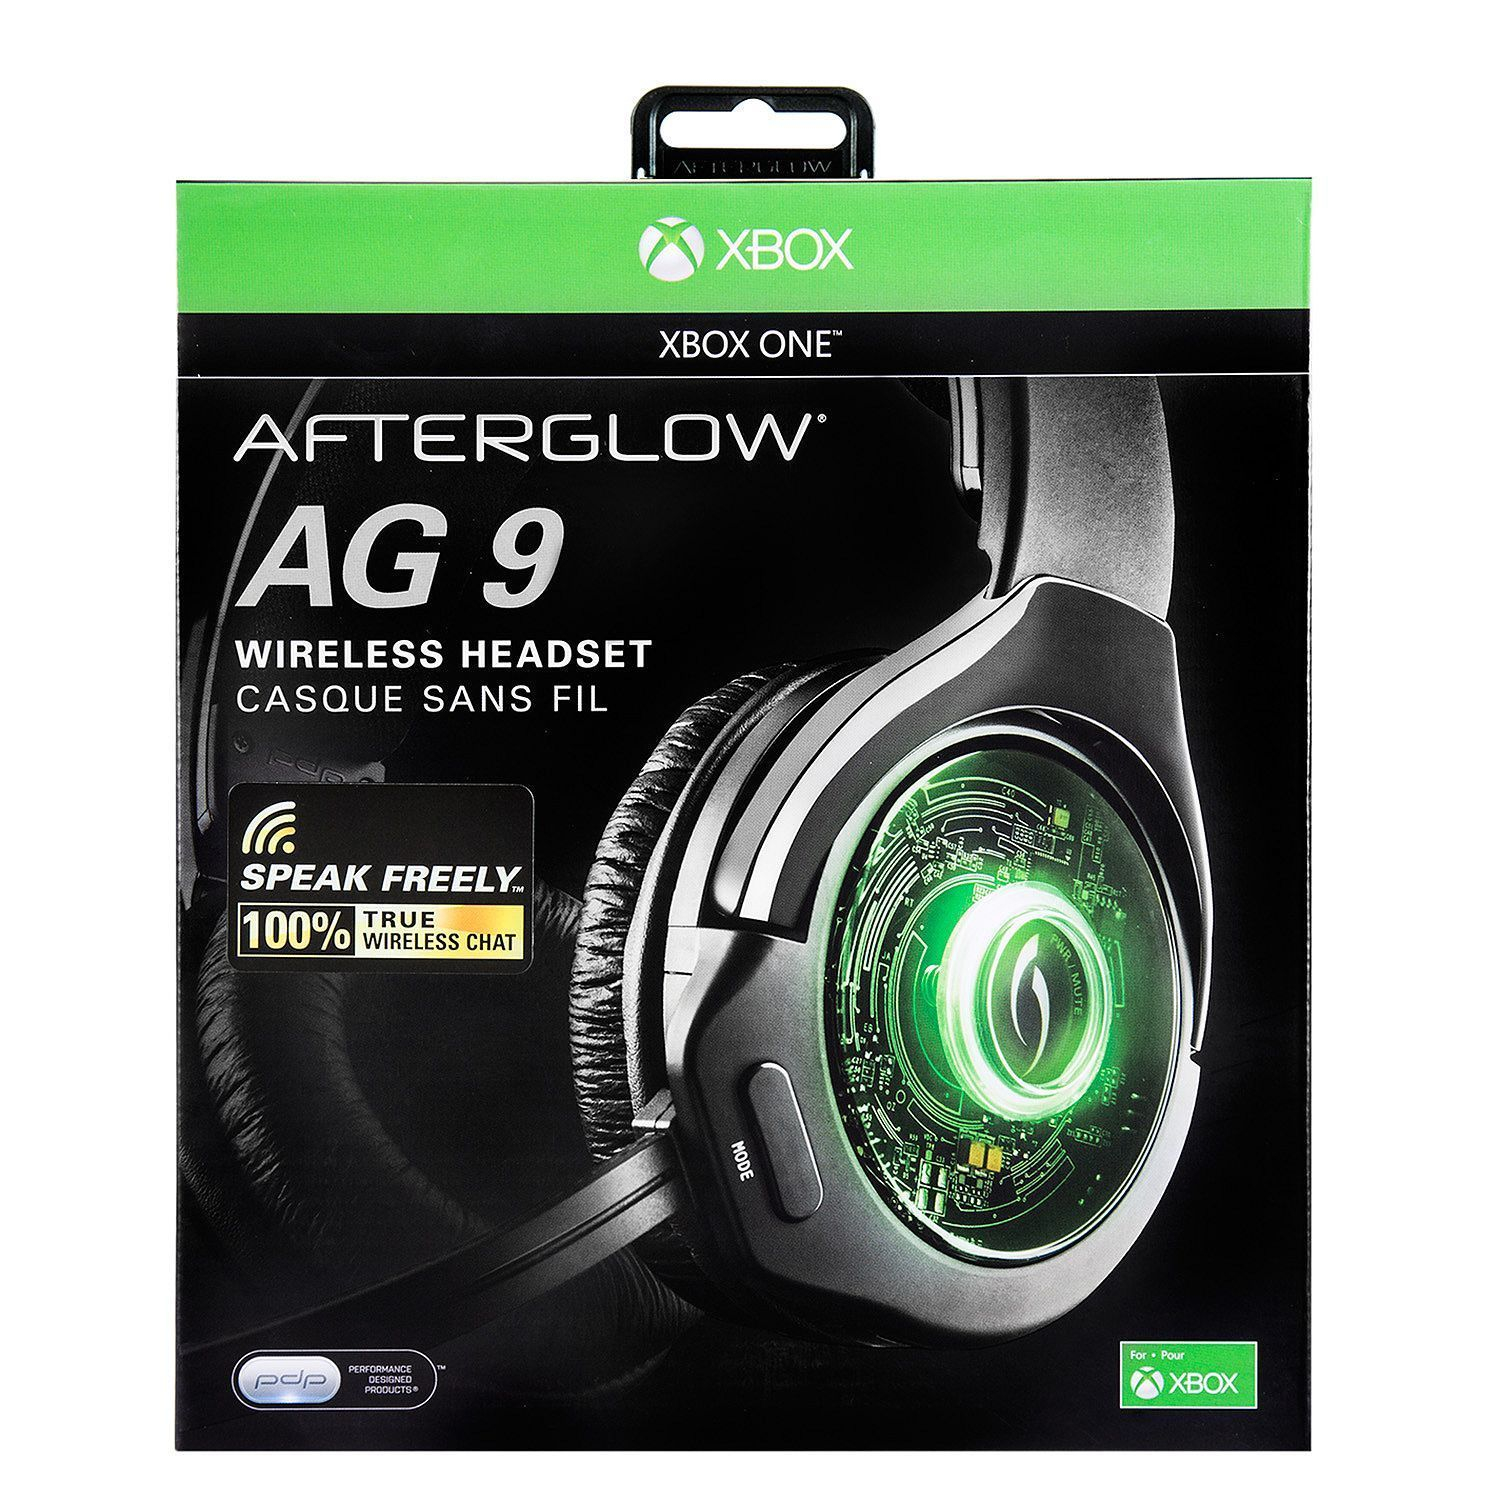 Afterglow AG 9 Wireless Headset for Xbox One and 50 similar items